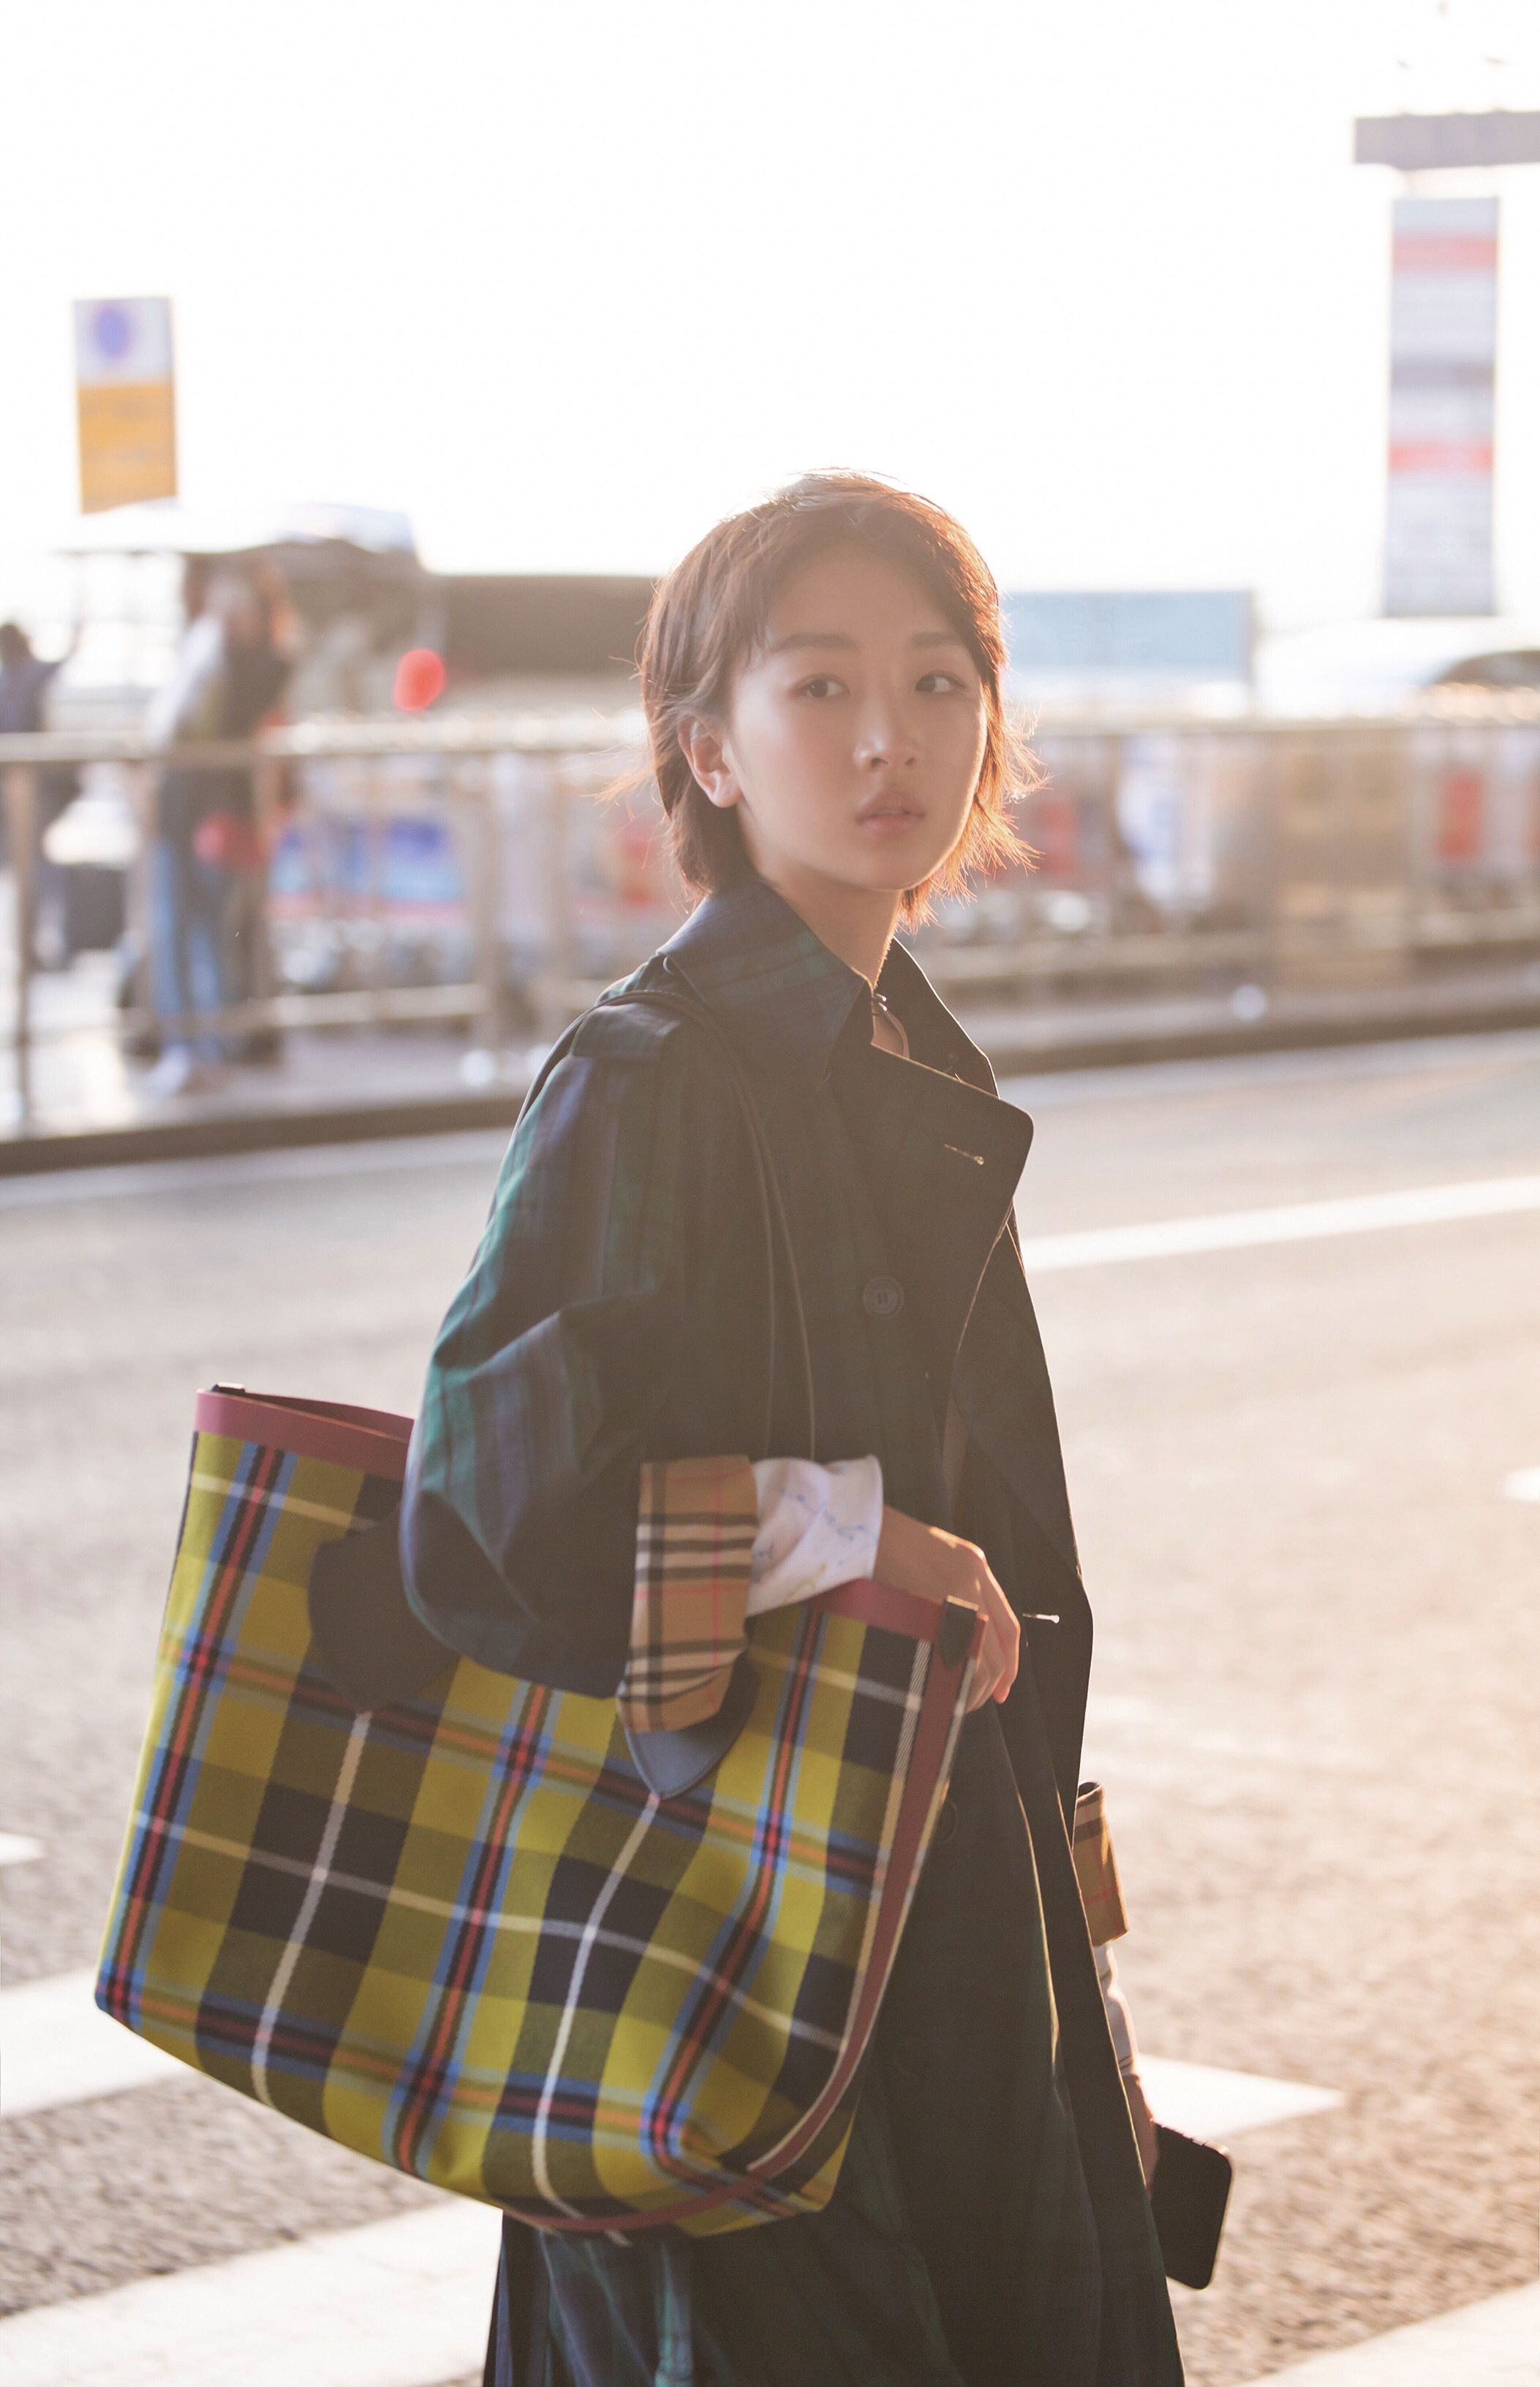 b1b4ae9edf4f8 Zhou Dongyu at Beijing Capital International Airport wearing  Burberry  pieces with The Giant reversible tote